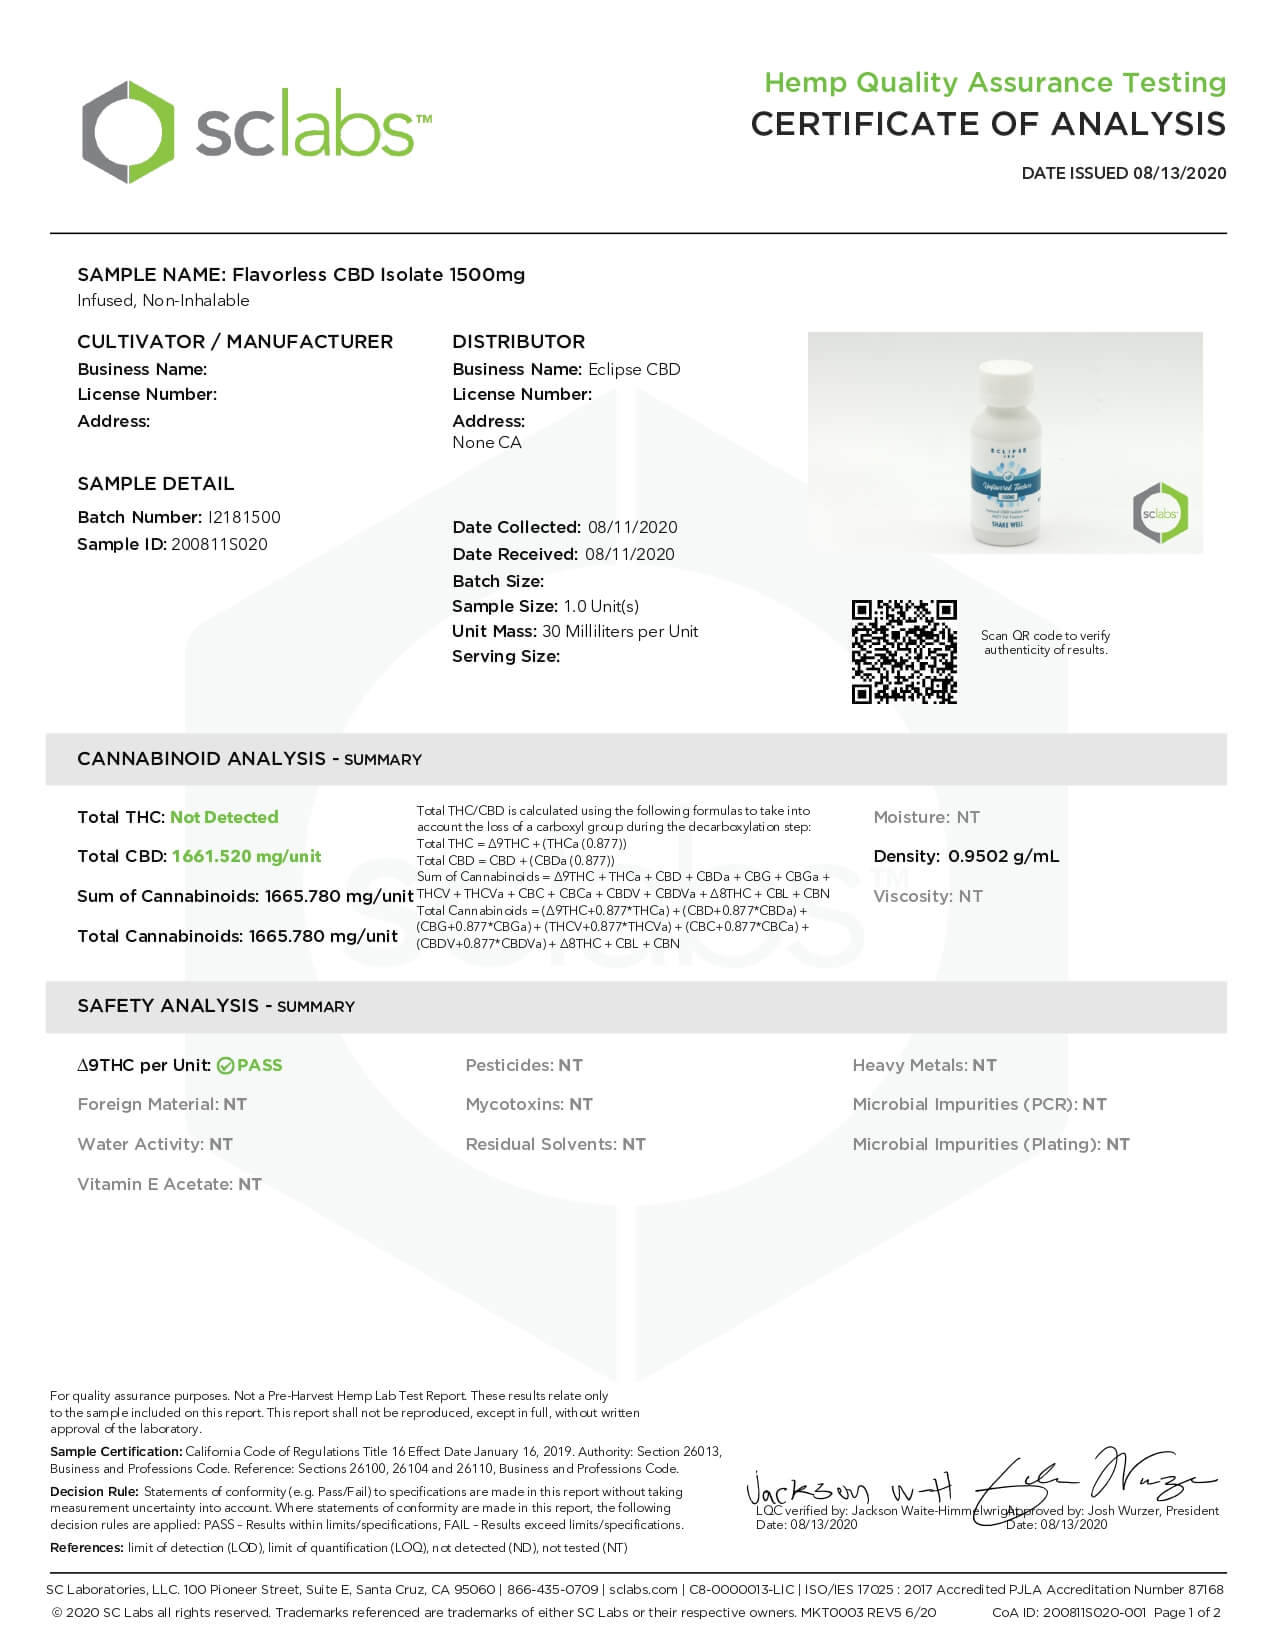 Eclipse CBD MCT Tincture Unflavored 1500mg Lab Report